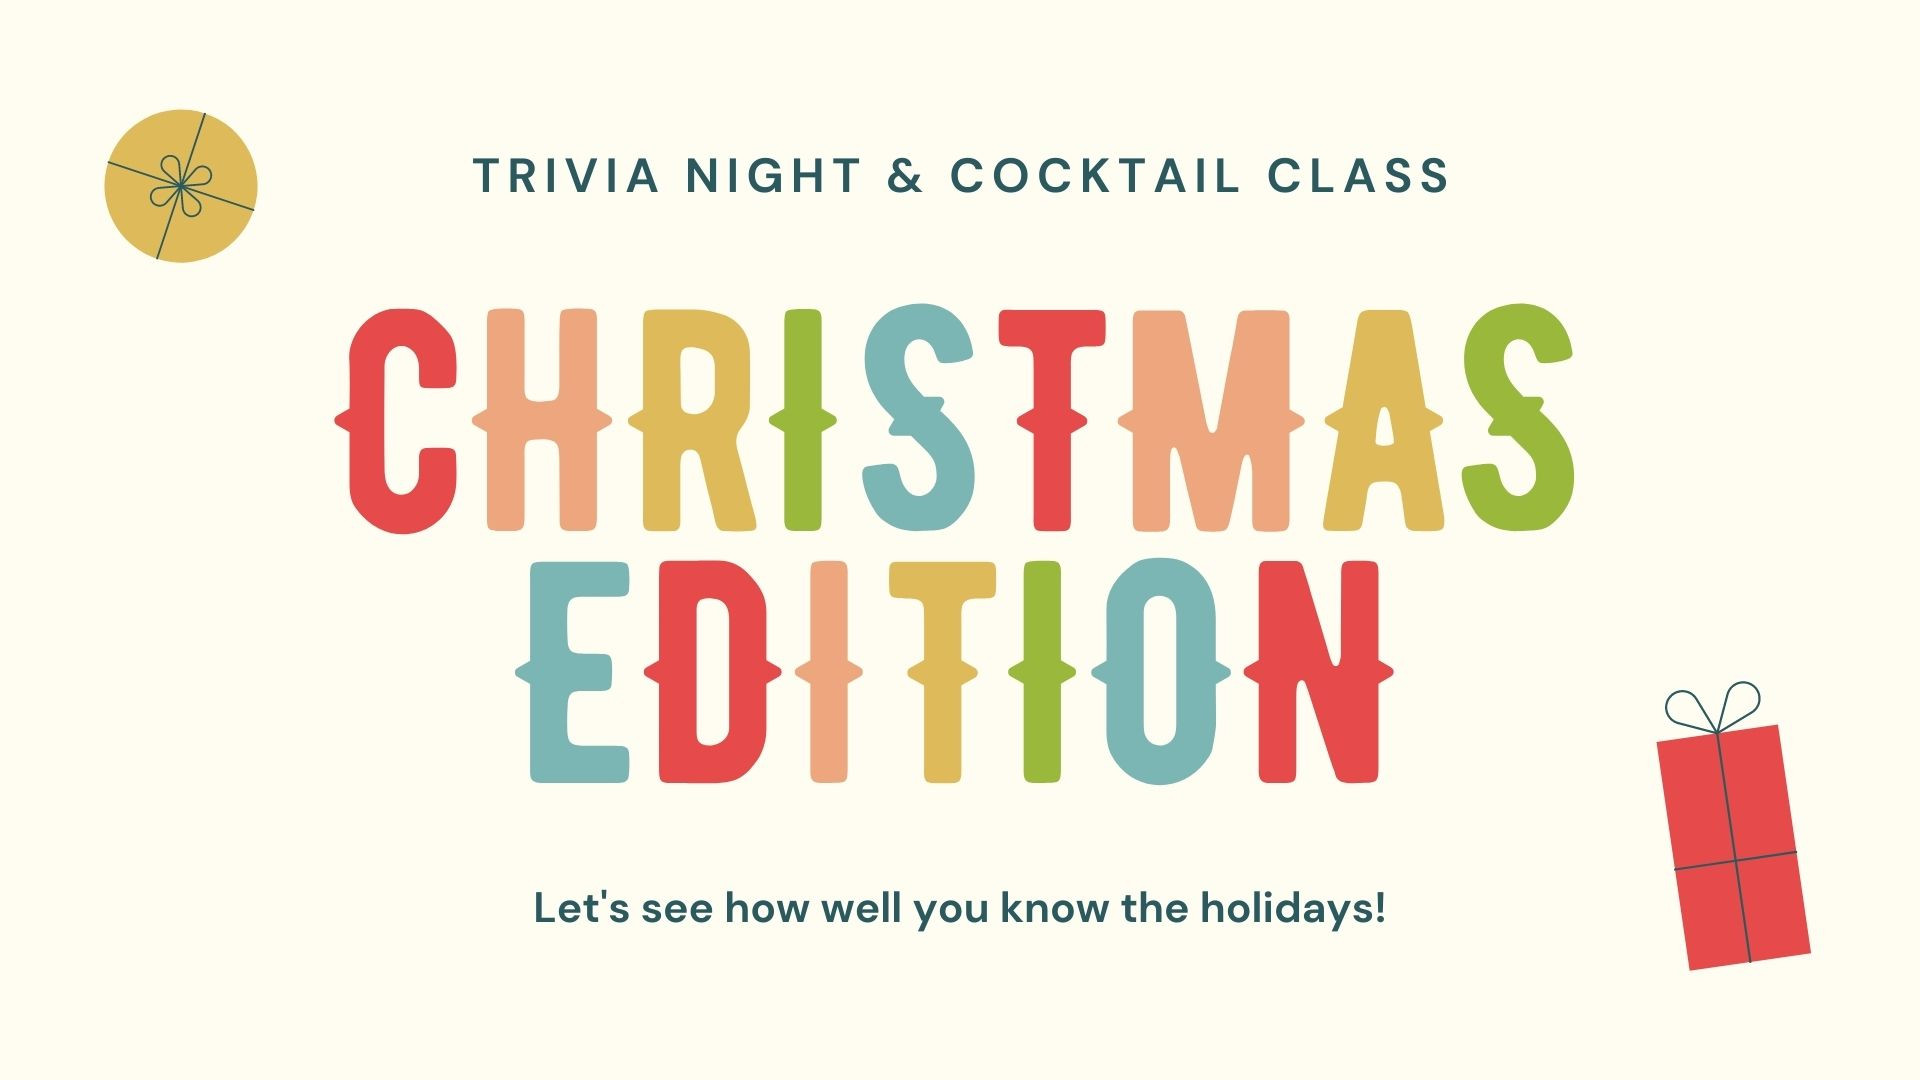 Holiday Trivia Night & Cocktail Class